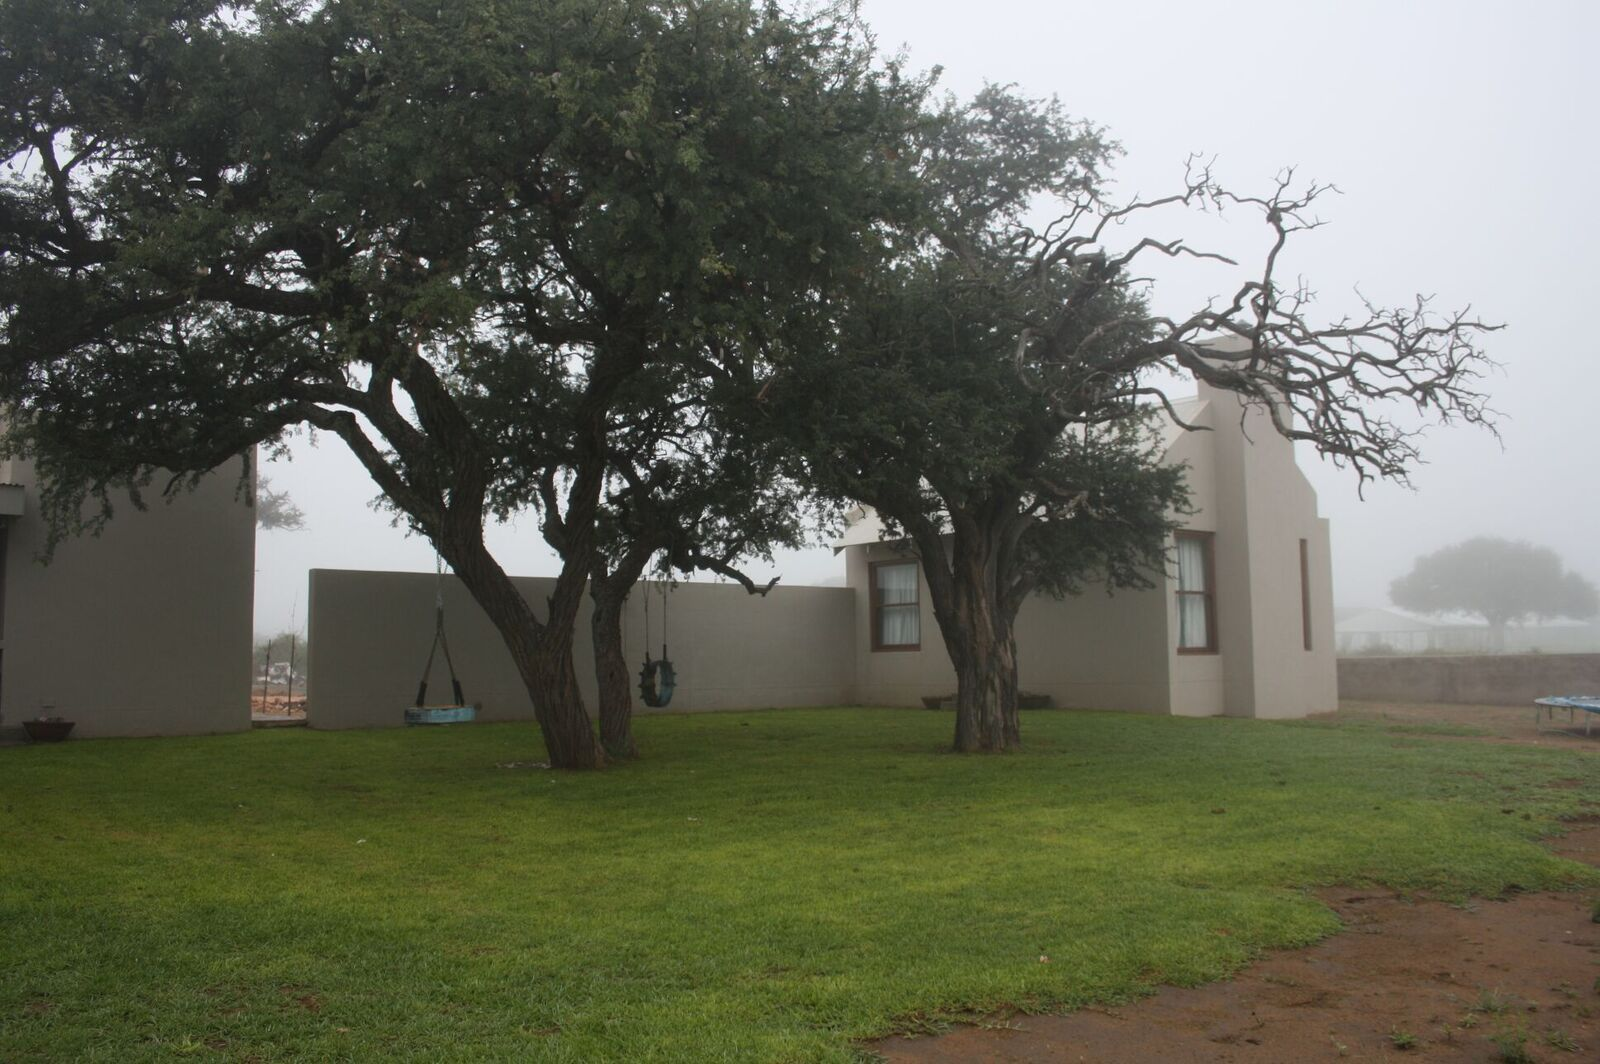 House in Namibia - IRmngF_k.jpeg